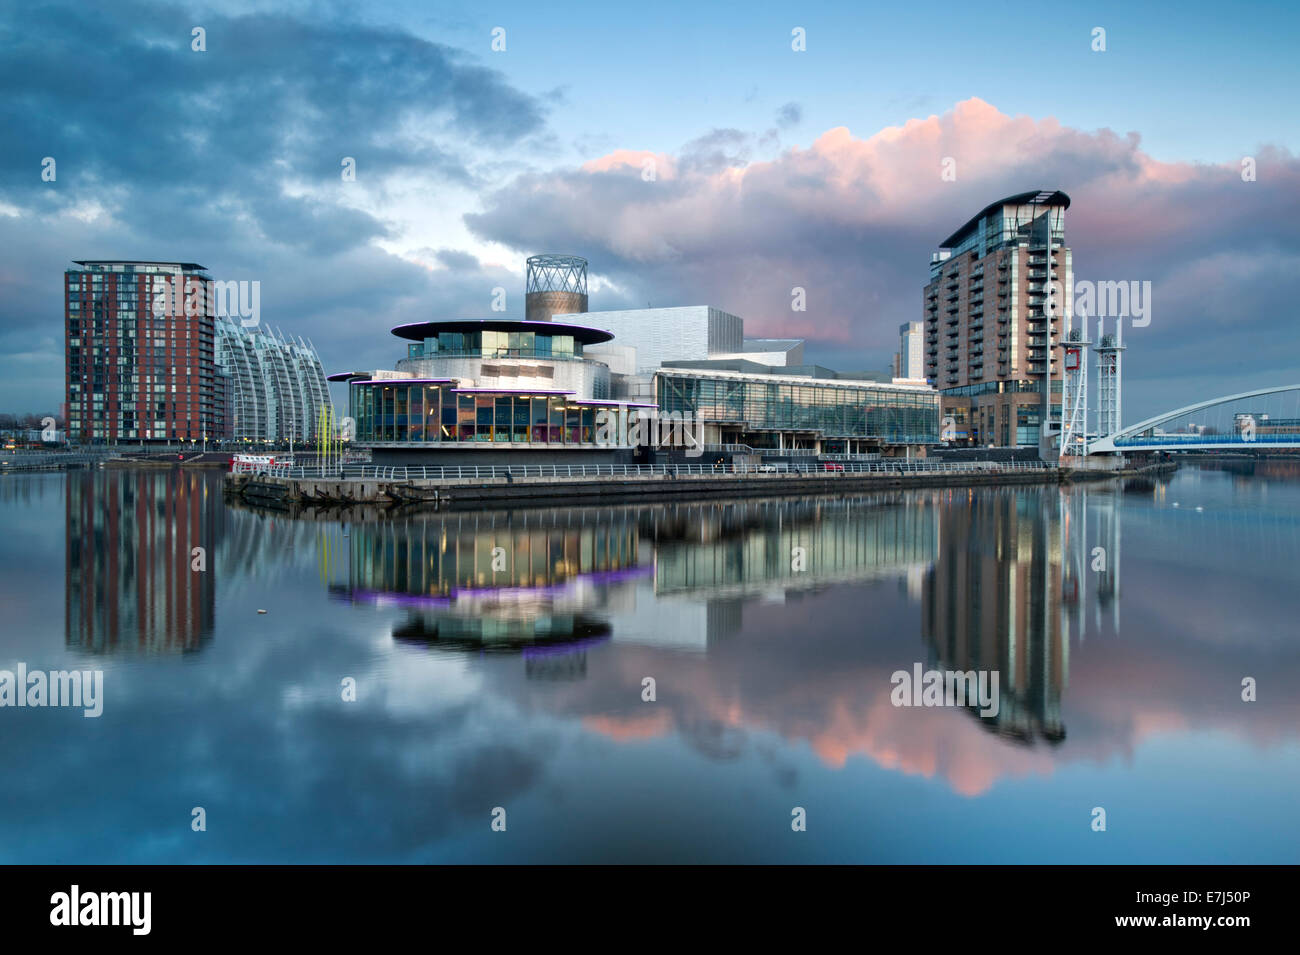 The Lowry Centre at Dusk, Salford Quays, Greater Manchester, England, UK - Stock Image